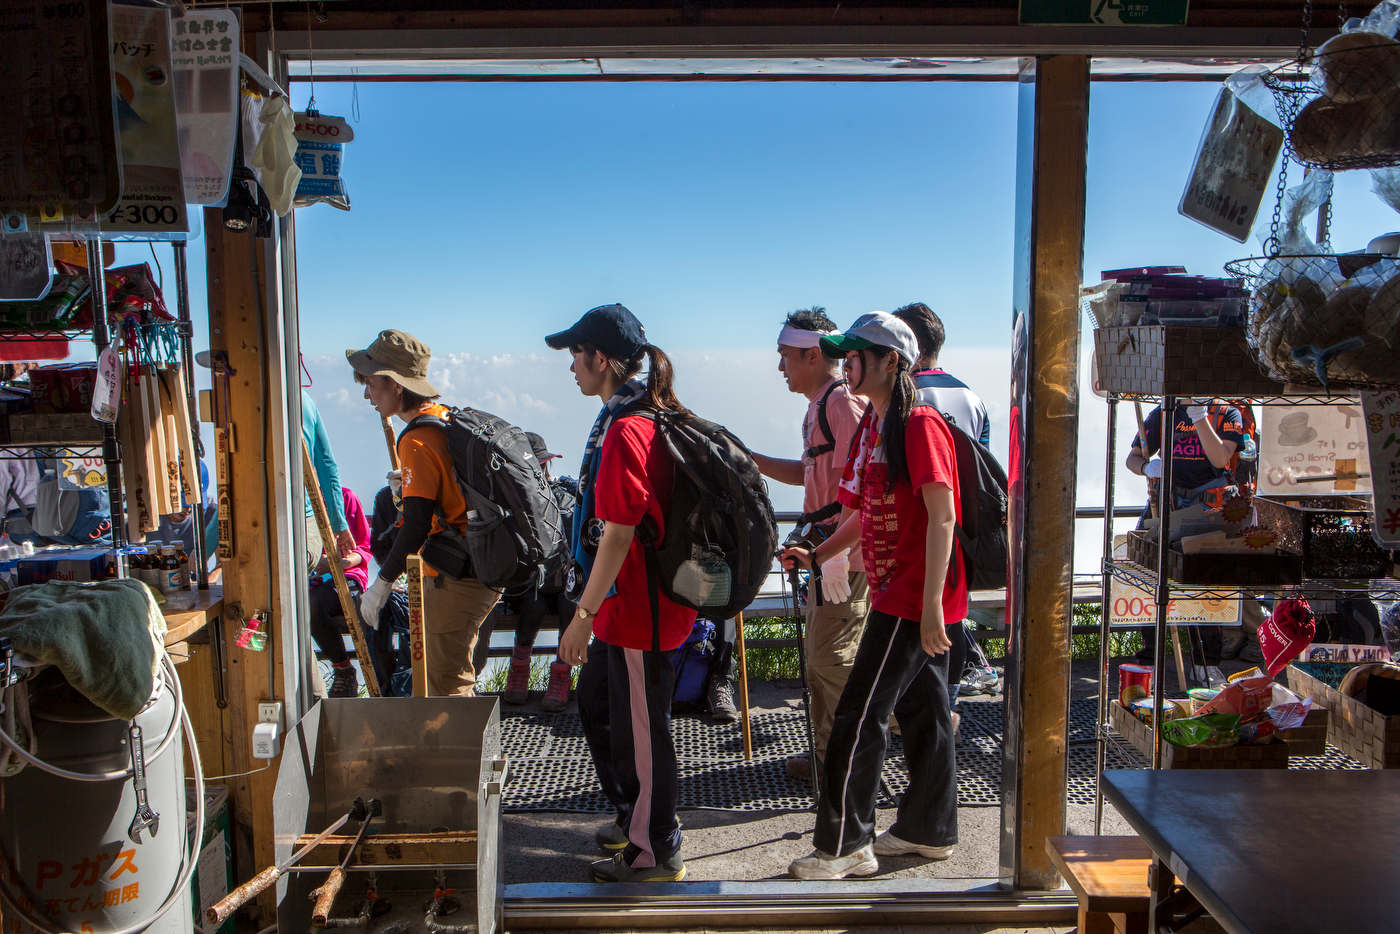 Hikers on the Yoshida trail, Mount Fuji's most popular route, pass the 6th station.